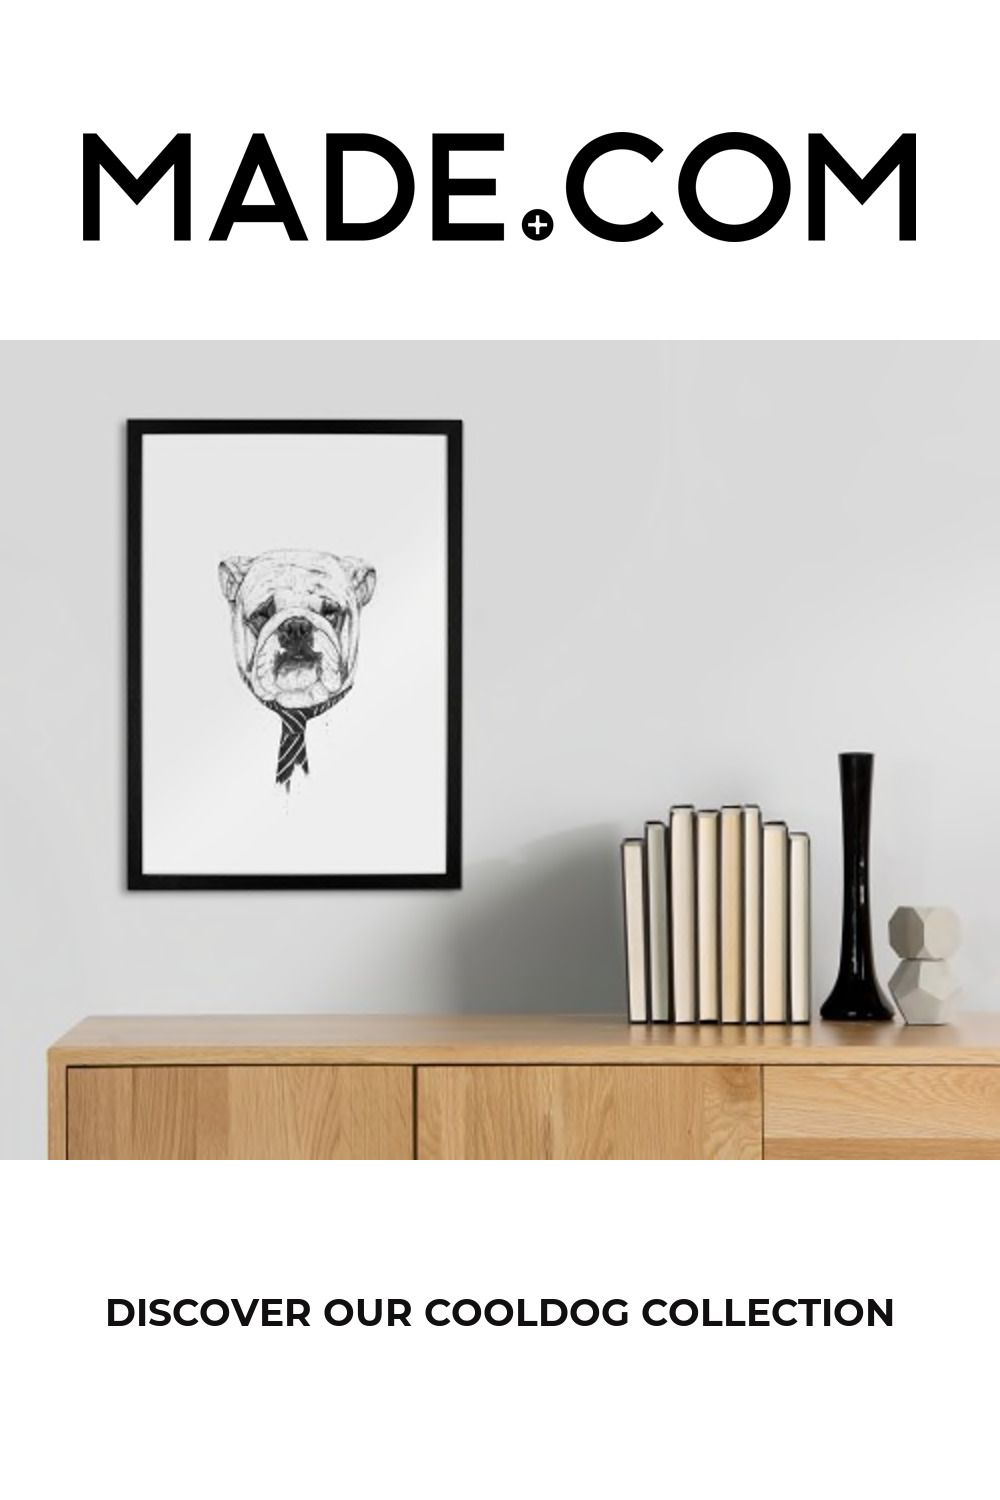 Cooldog by Balazs Solti, 30 x 40cm Wall Art Print